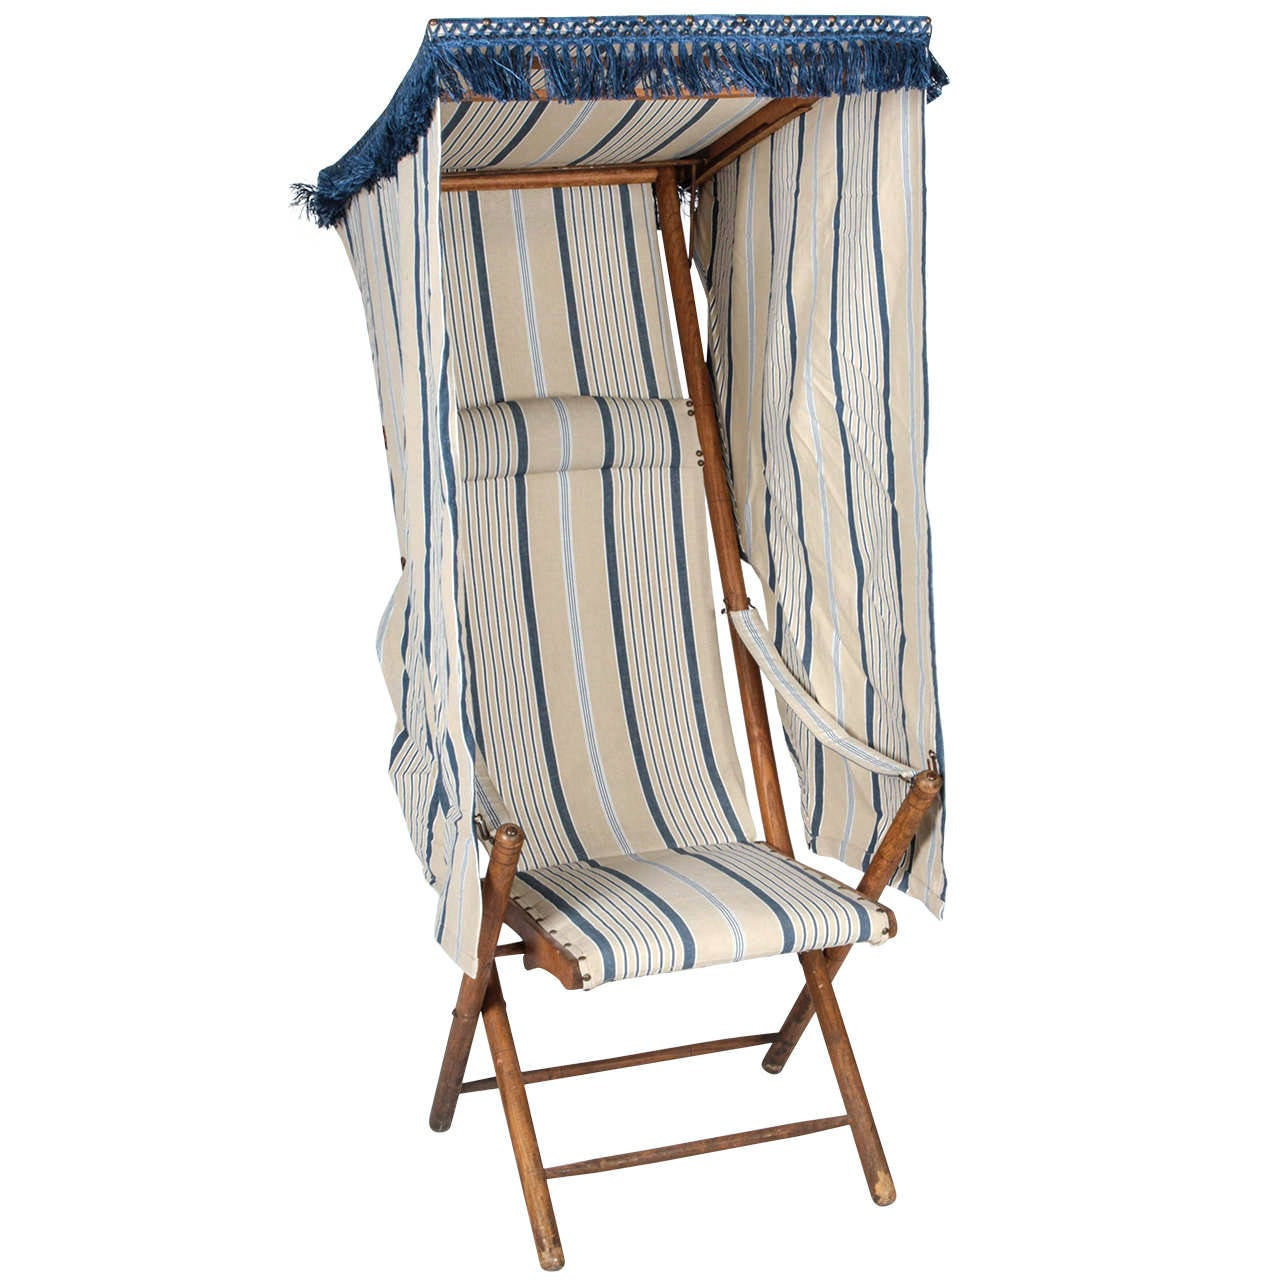 canopy chairs best price chair design awards french beach with at 1stdibs